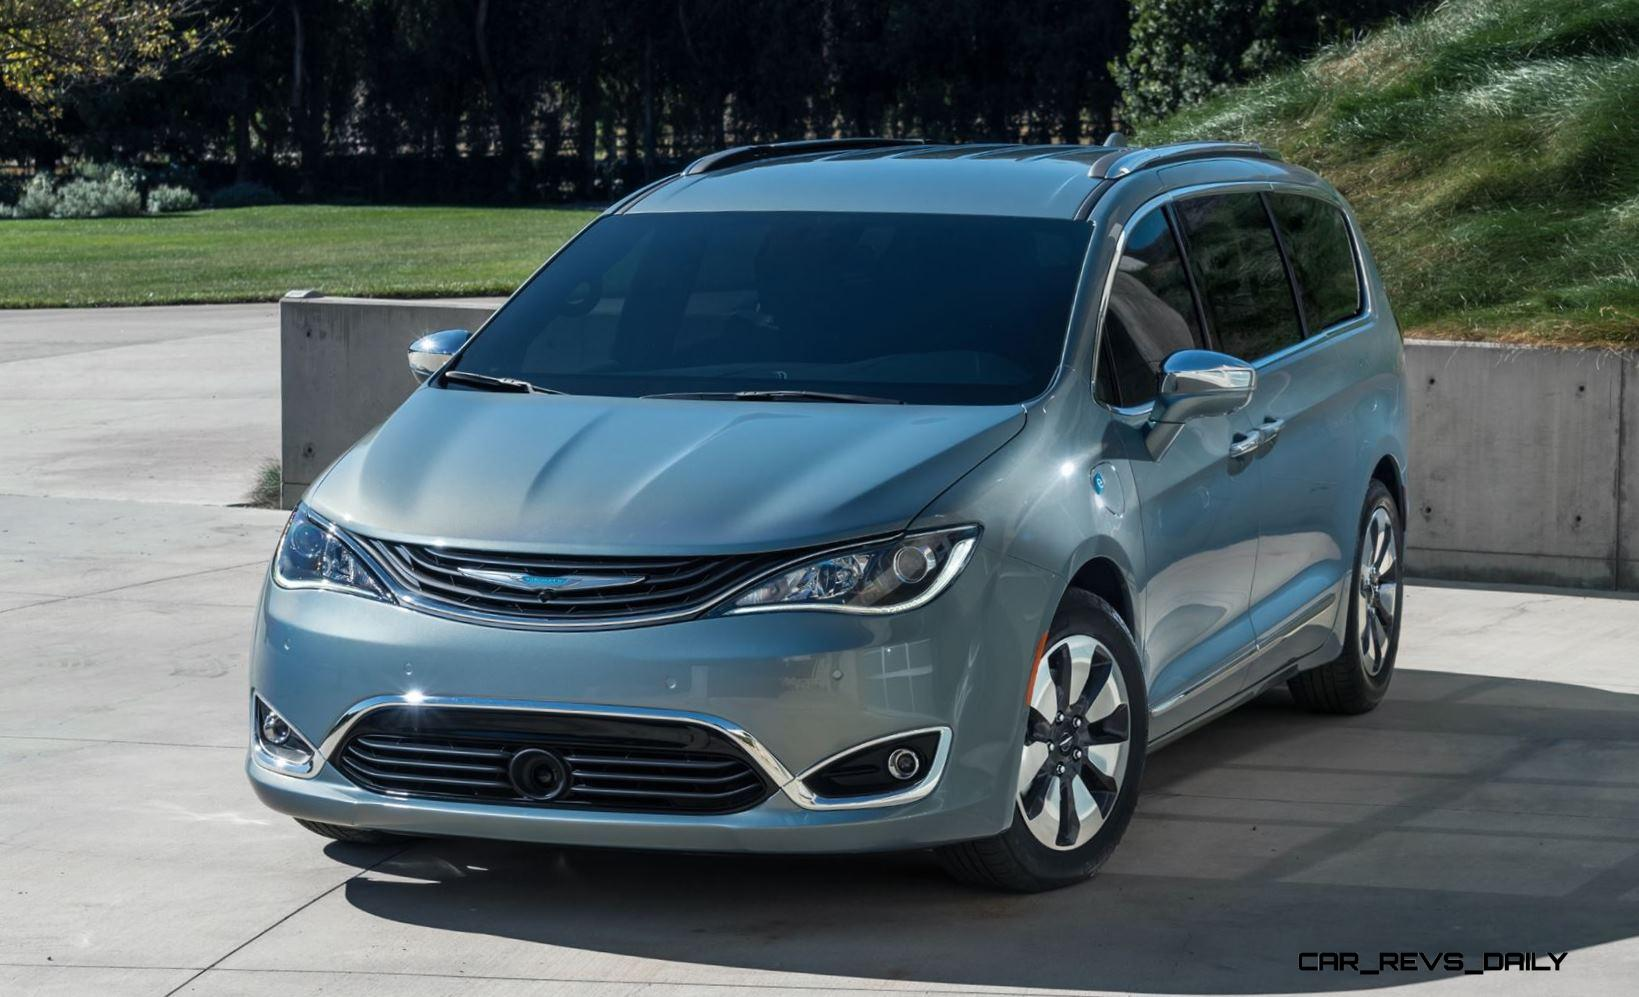 2017 chrysler pacifica is all new minivan phev hybrid luxury and tech to leapfrog sienna odyssey. Black Bedroom Furniture Sets. Home Design Ideas